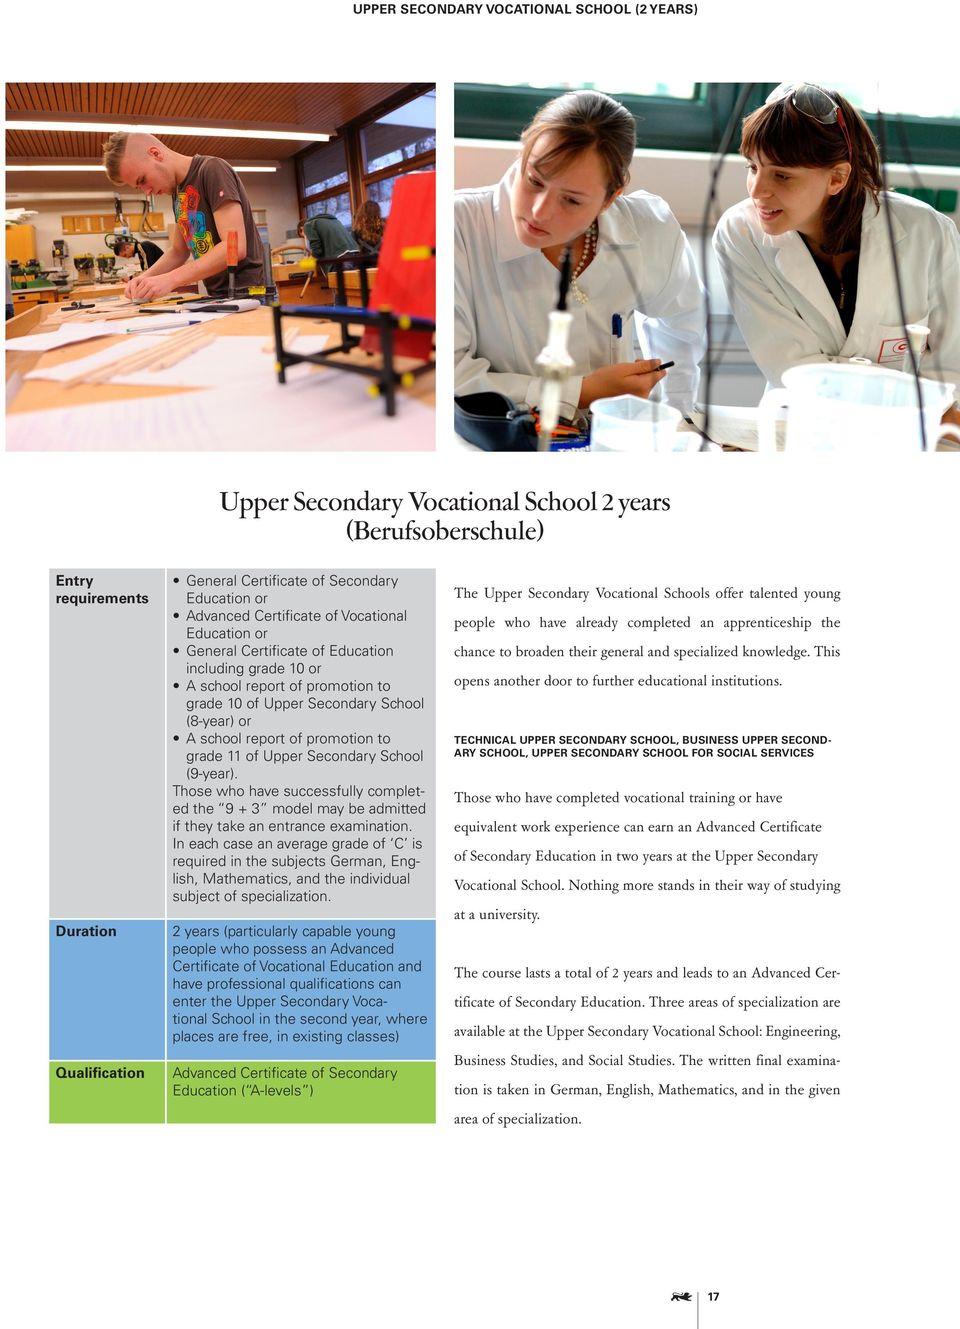 of promotion to grade 11 of Upper Secondary School (9-year). Those who have successfully completed the 9 + 3 model may be admitted if they take an entrance examination.